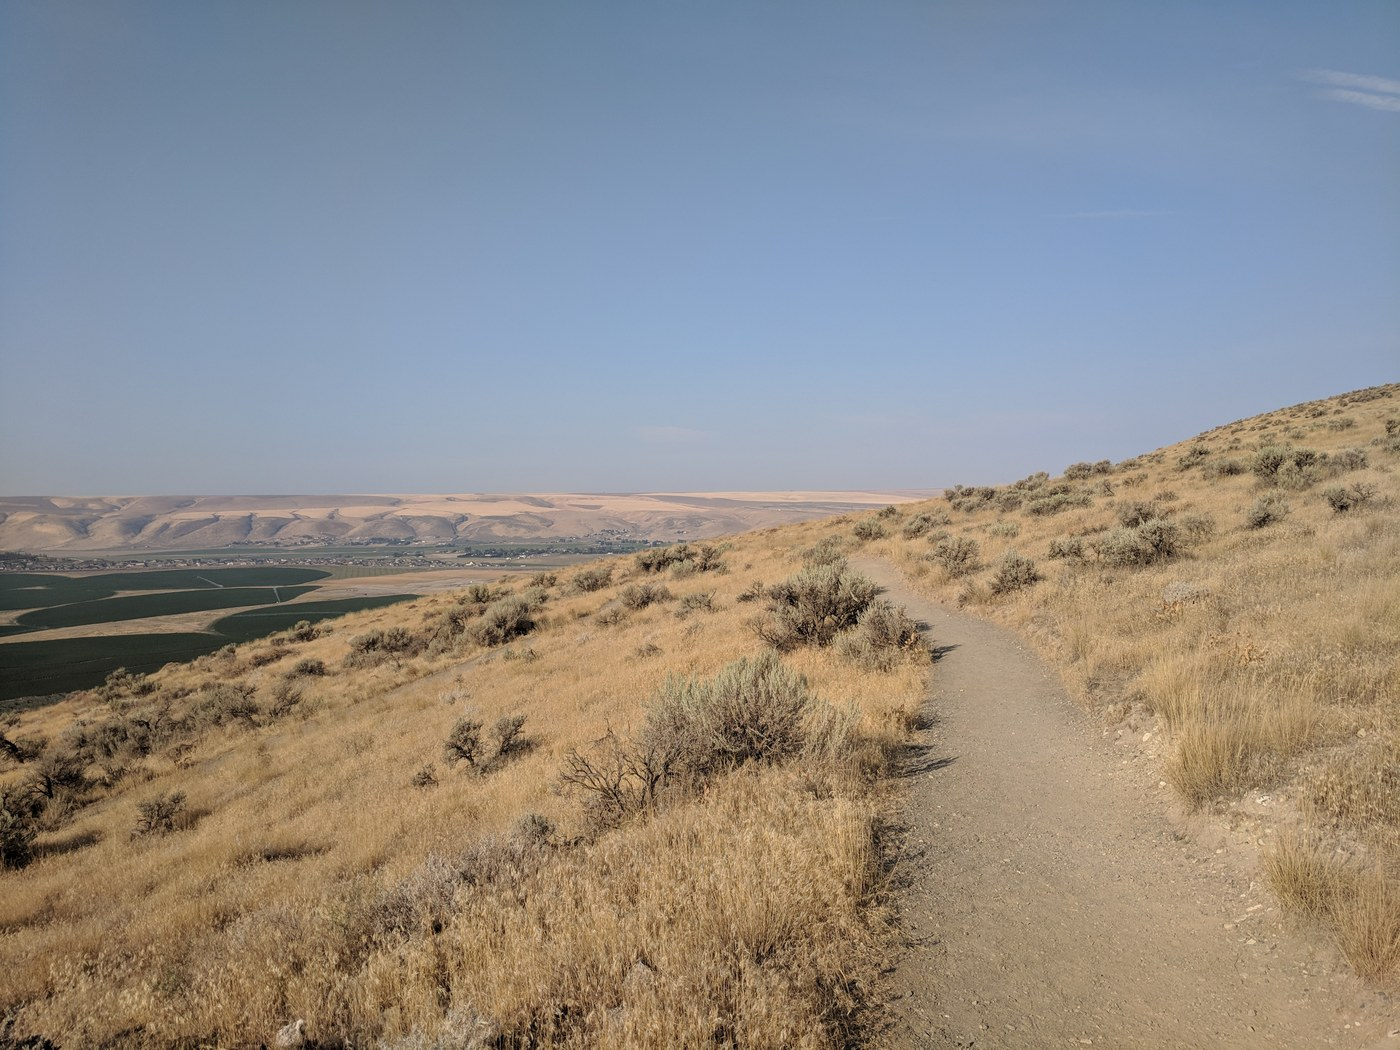 Badger Trail along dry grassy hills with a view to a distant town in the valley. Photo by Luffles.